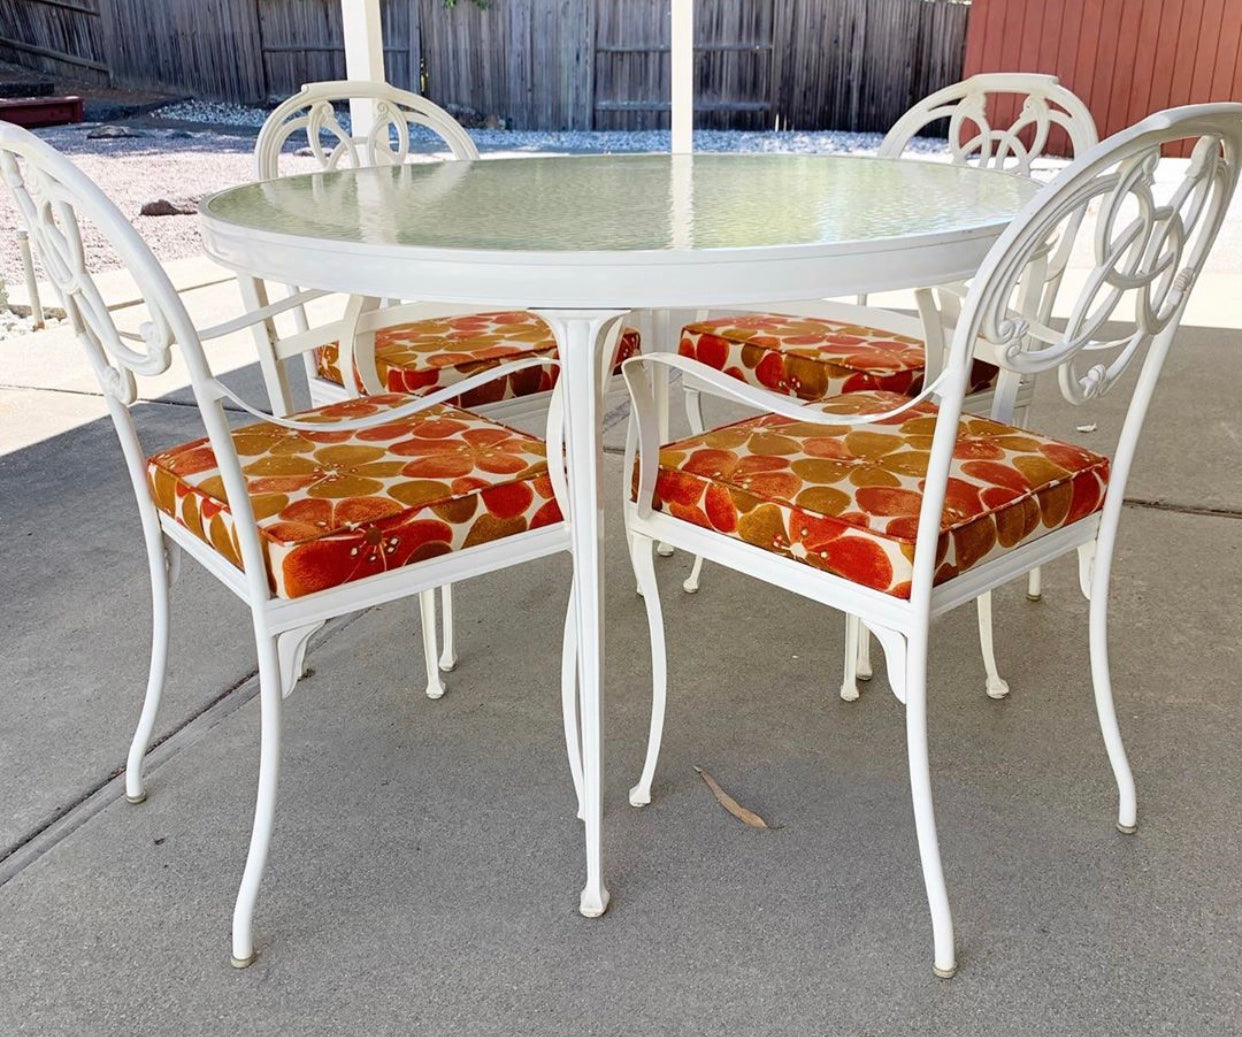 Gorgeous Vintage White Wrought Iron Patio Set with Glass Top. Perfect Outdoor Beauty!! Clean and Classy!!